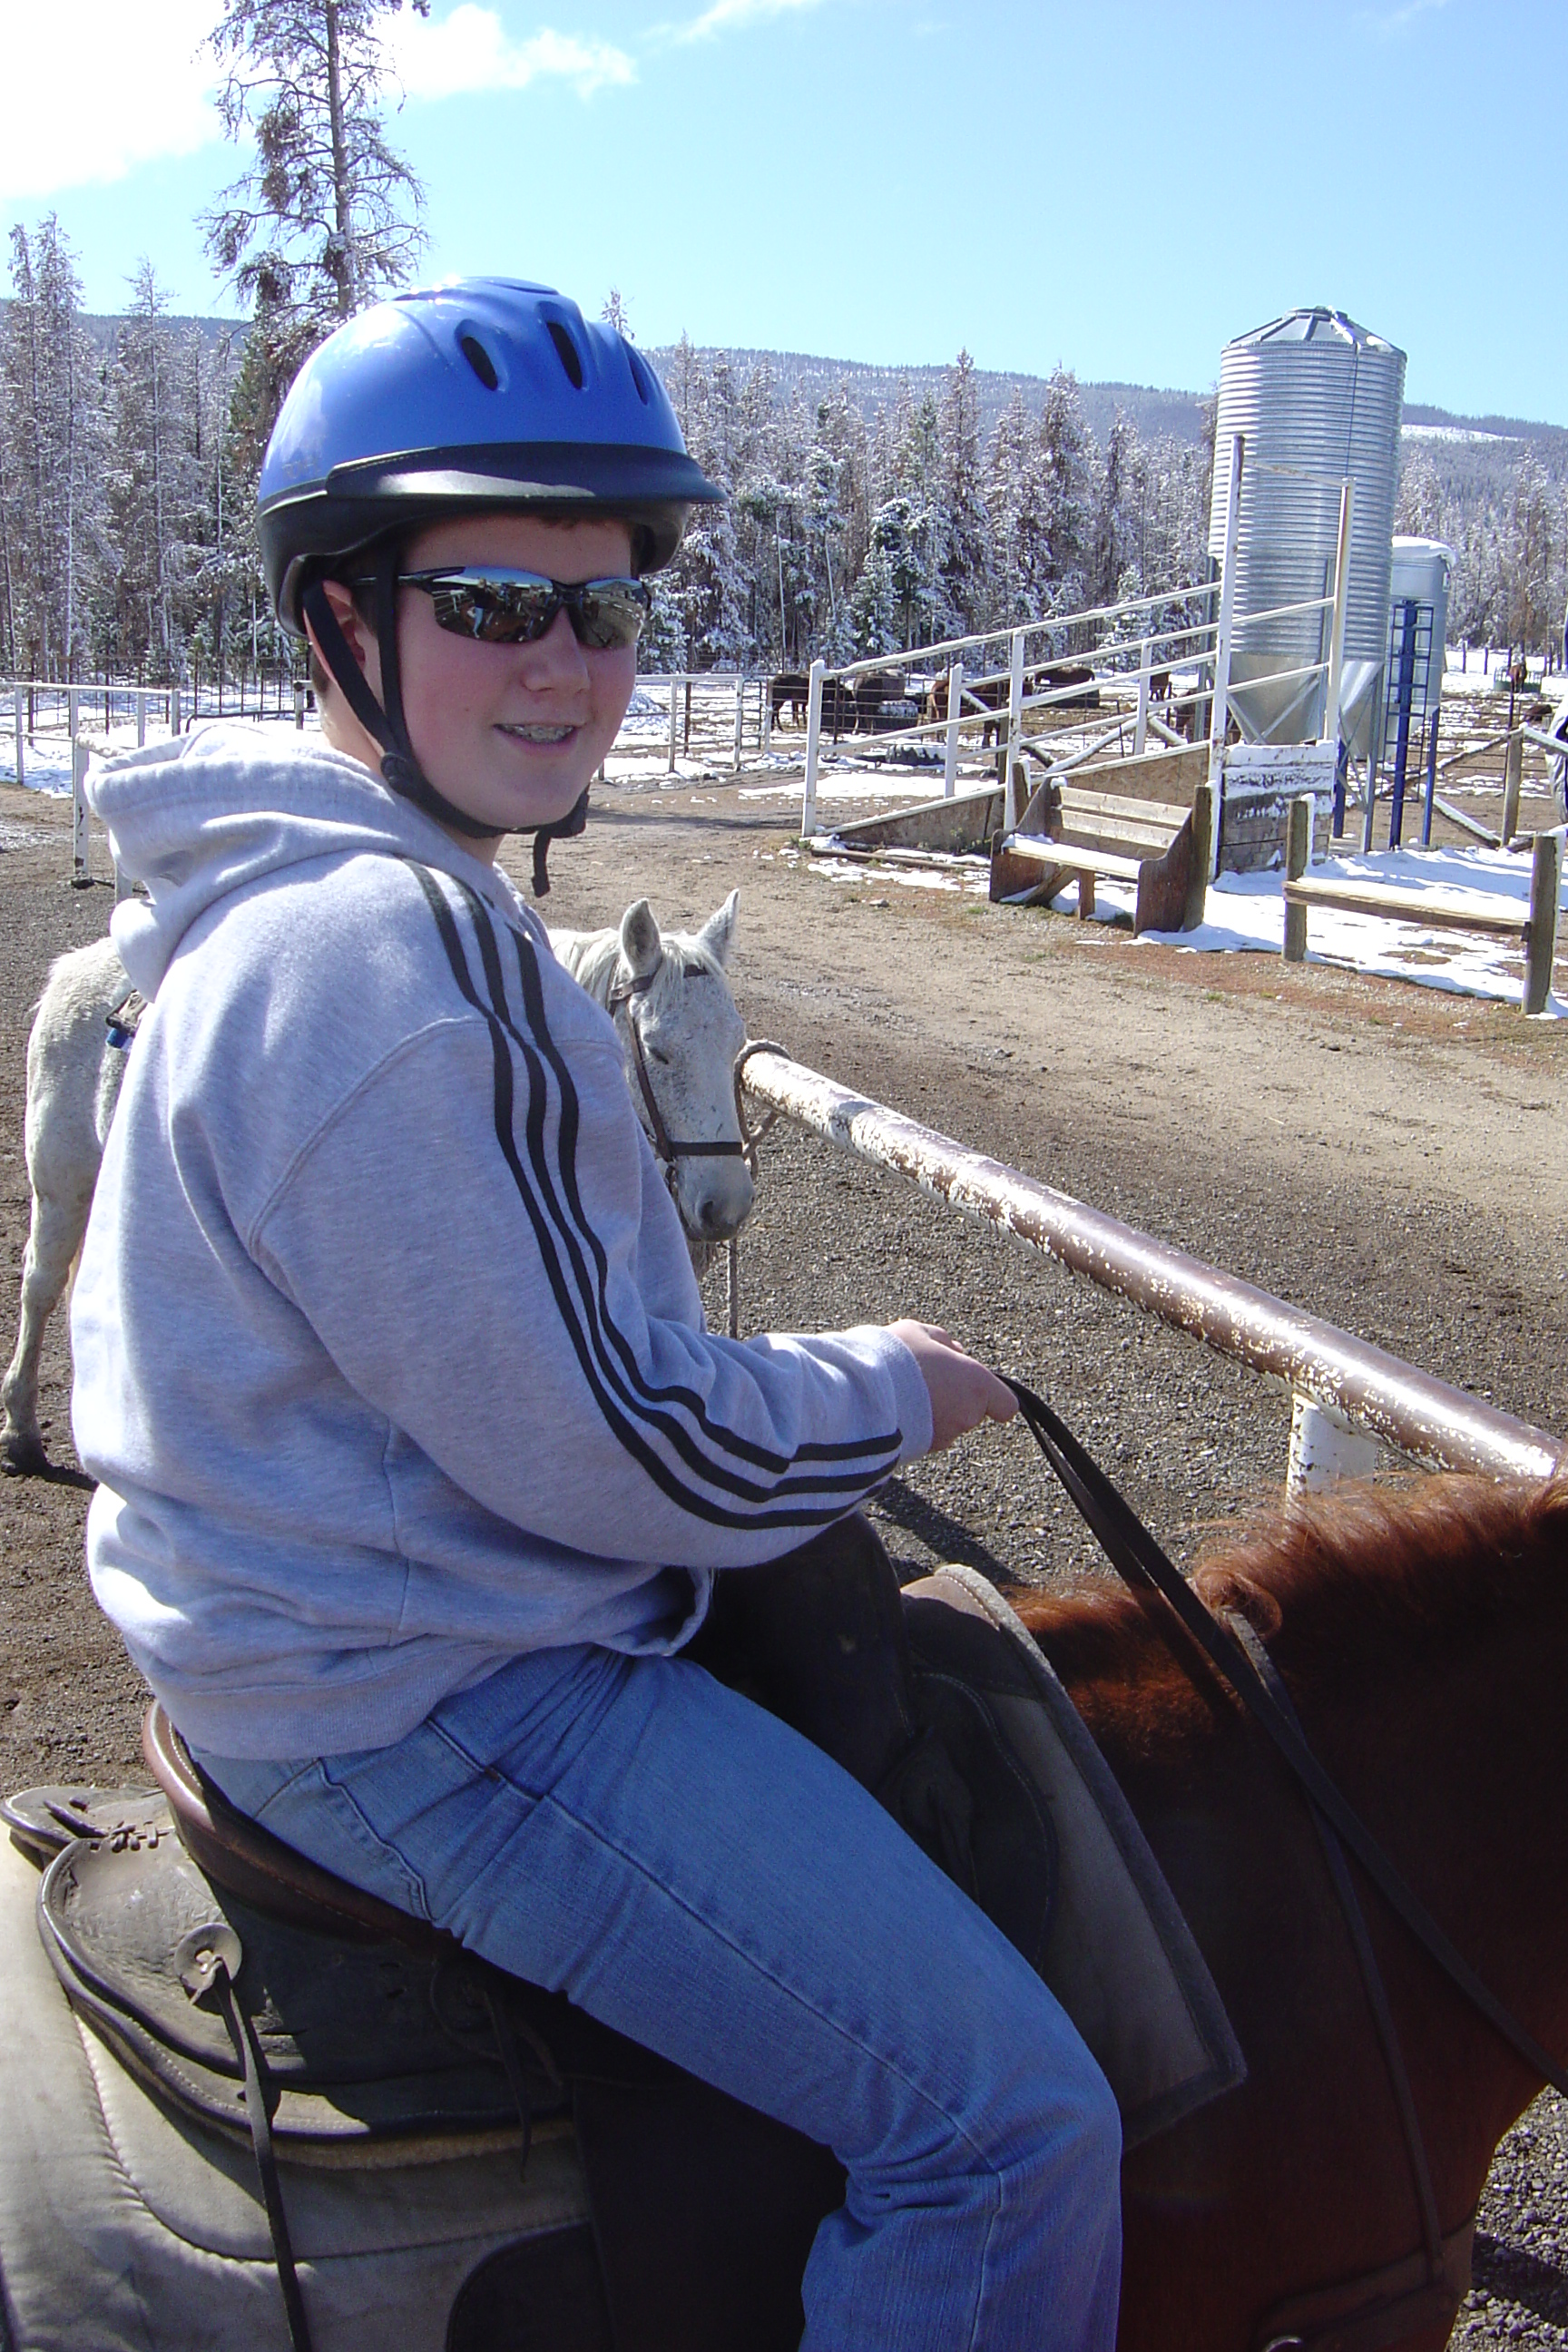 Matthew's horse was named Footloose and he pooped a LOT!